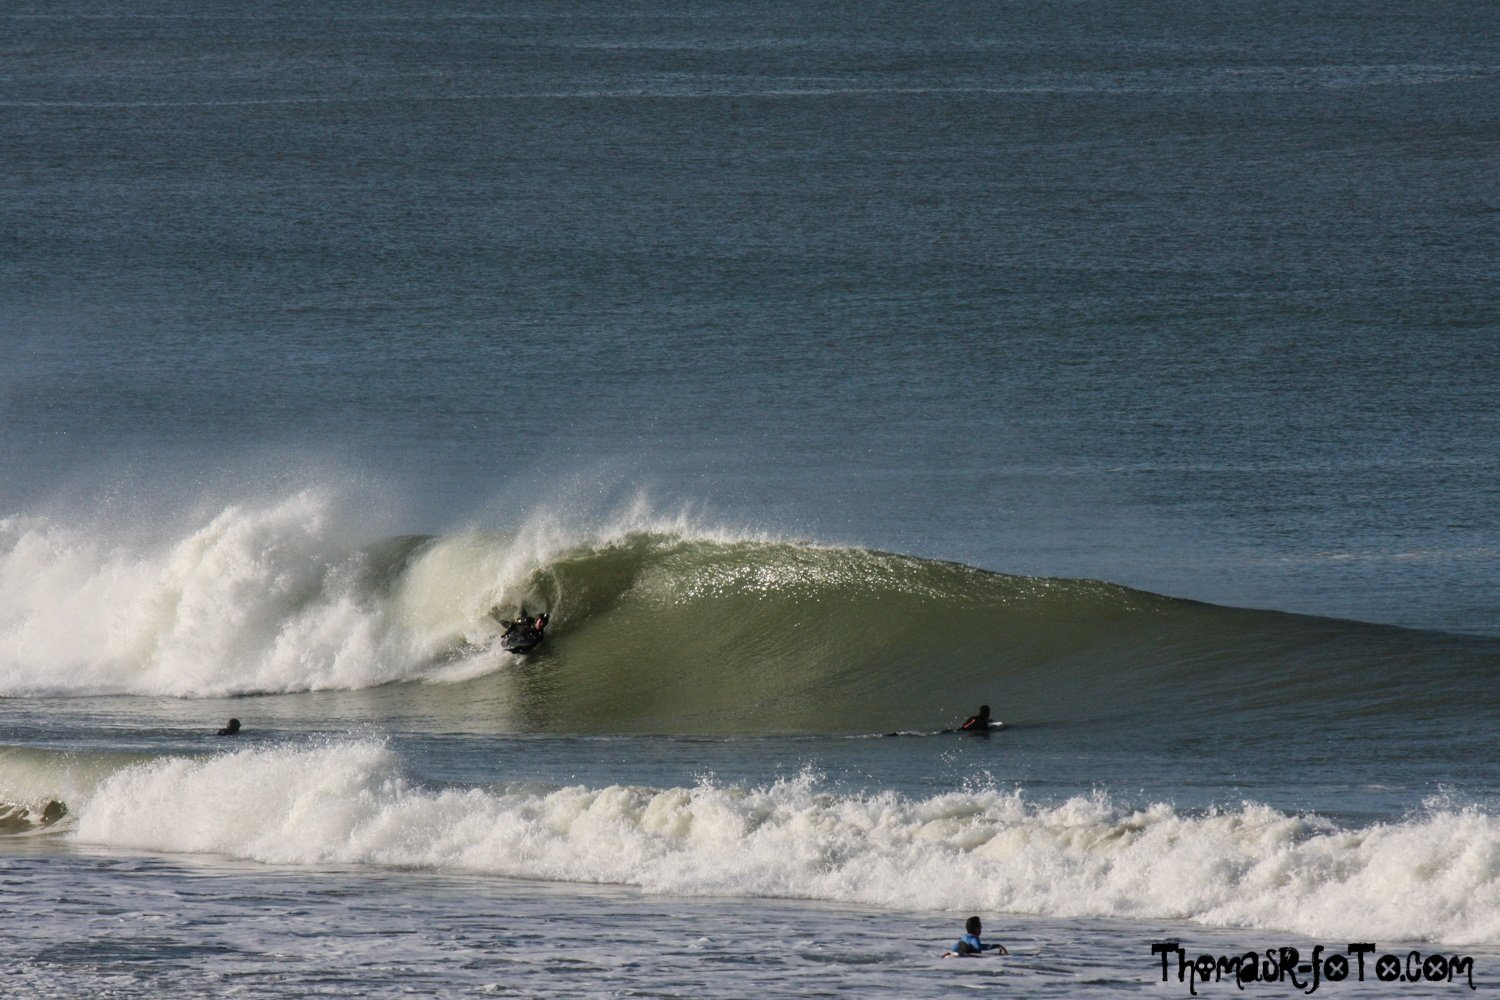 SuperDupont's photo of Les Conches/Bud Bud